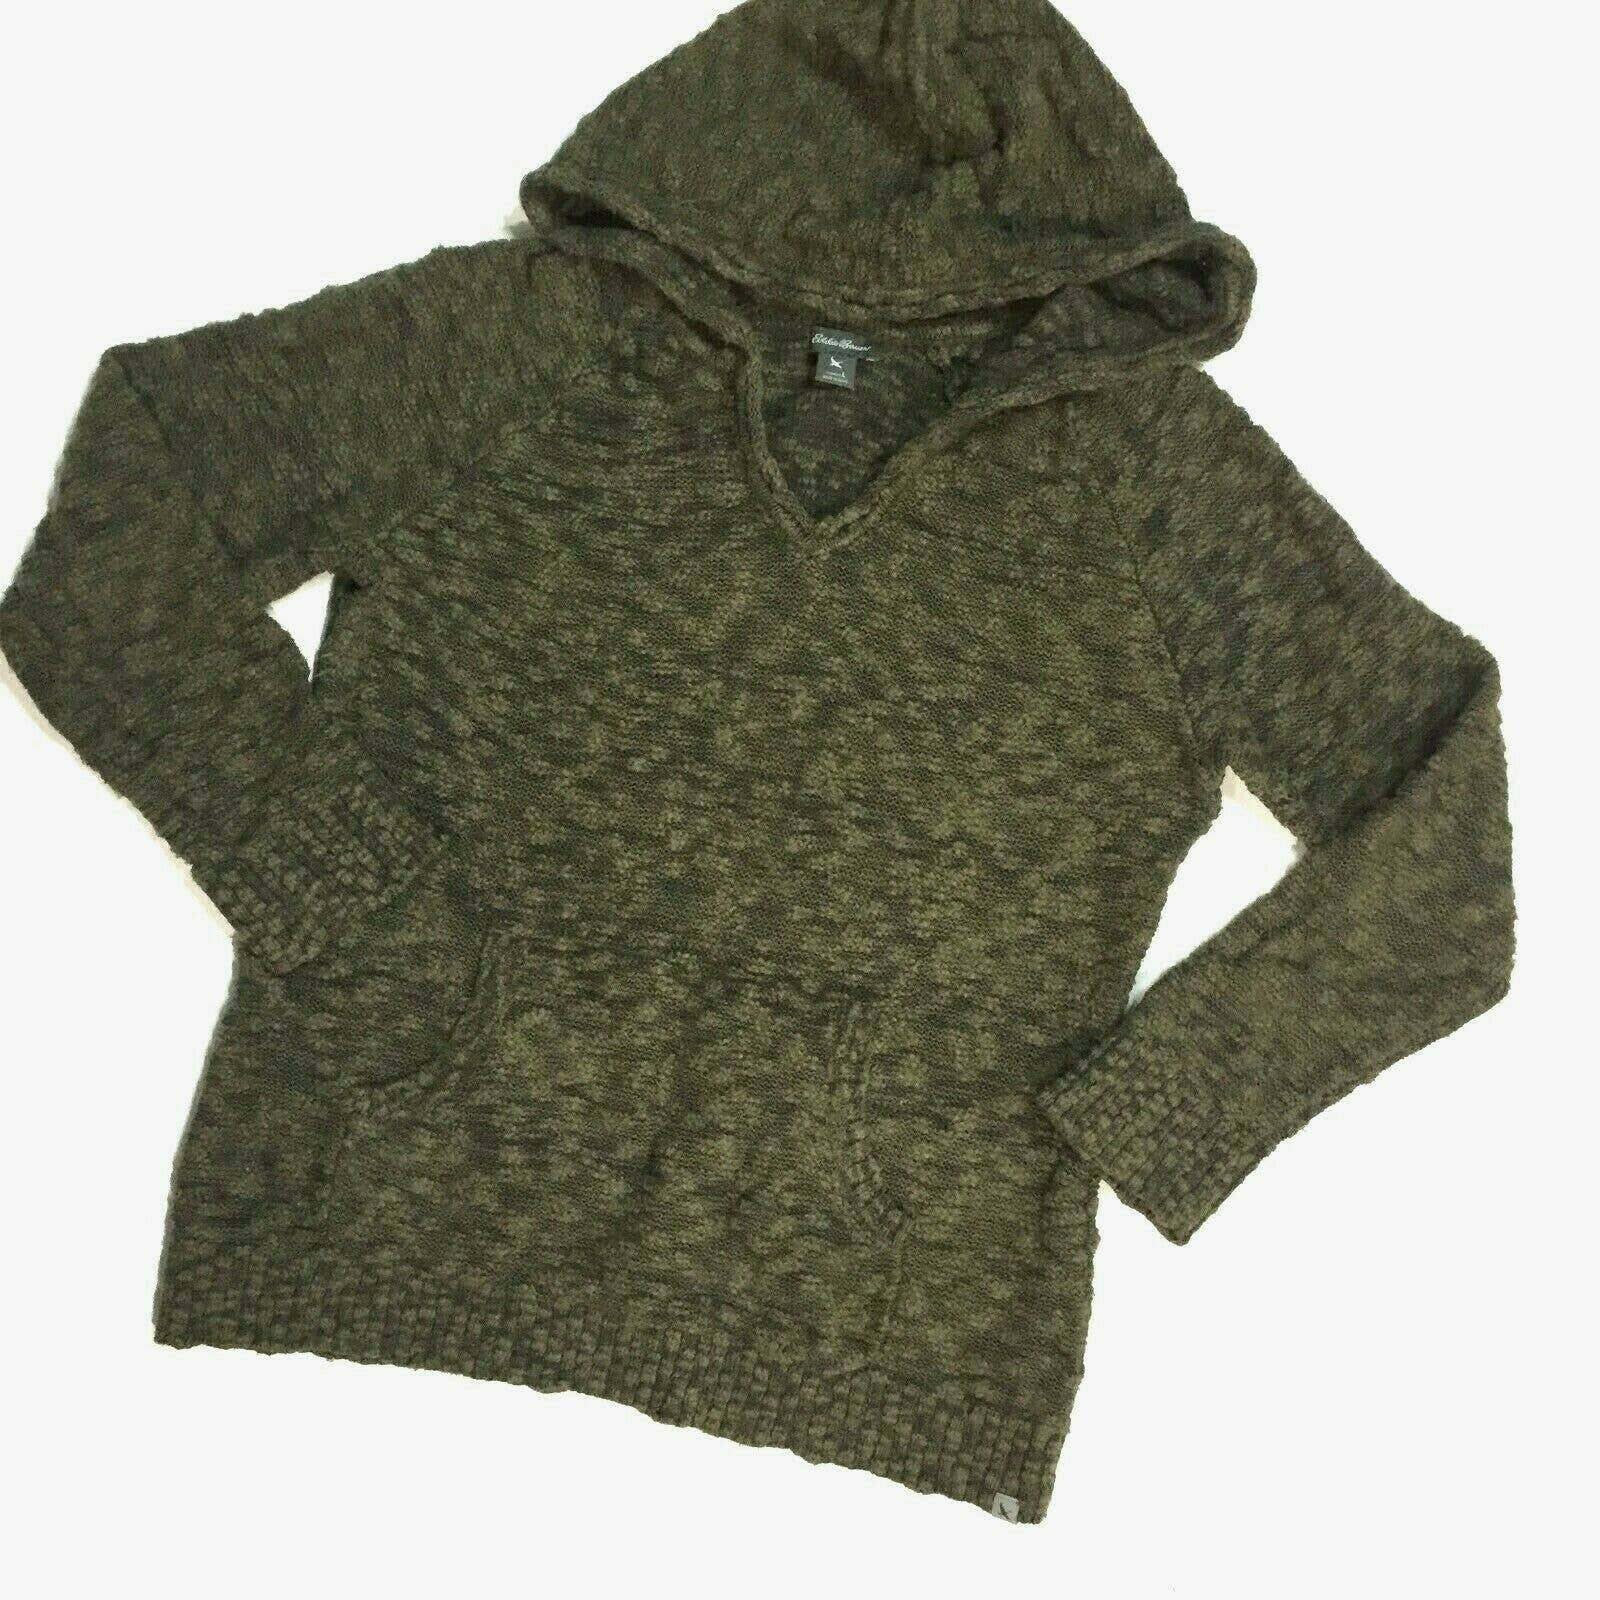 Eddie Bauer Olive Boucle Hooded Sweater